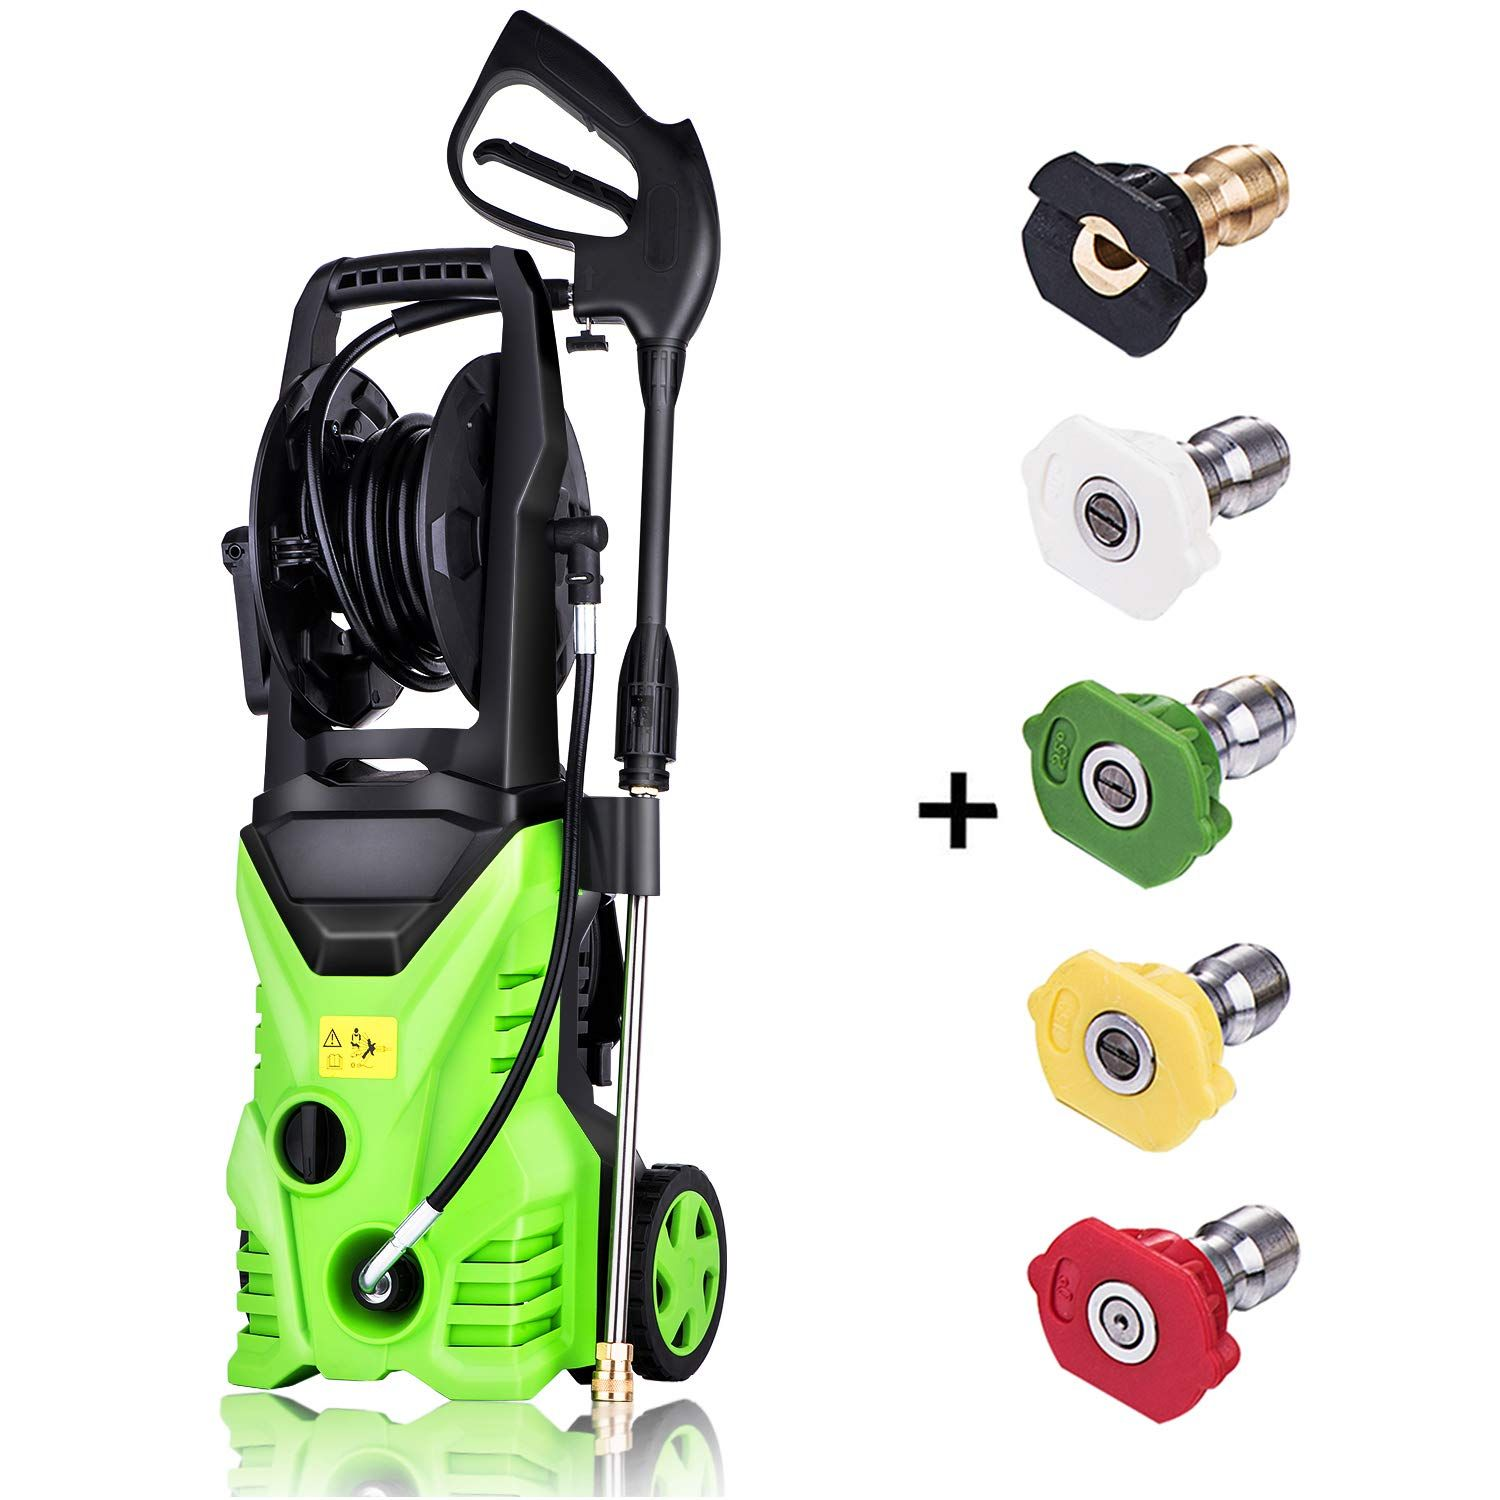 Schafter St5 Pressure Washer Review Electric Pressure Washer